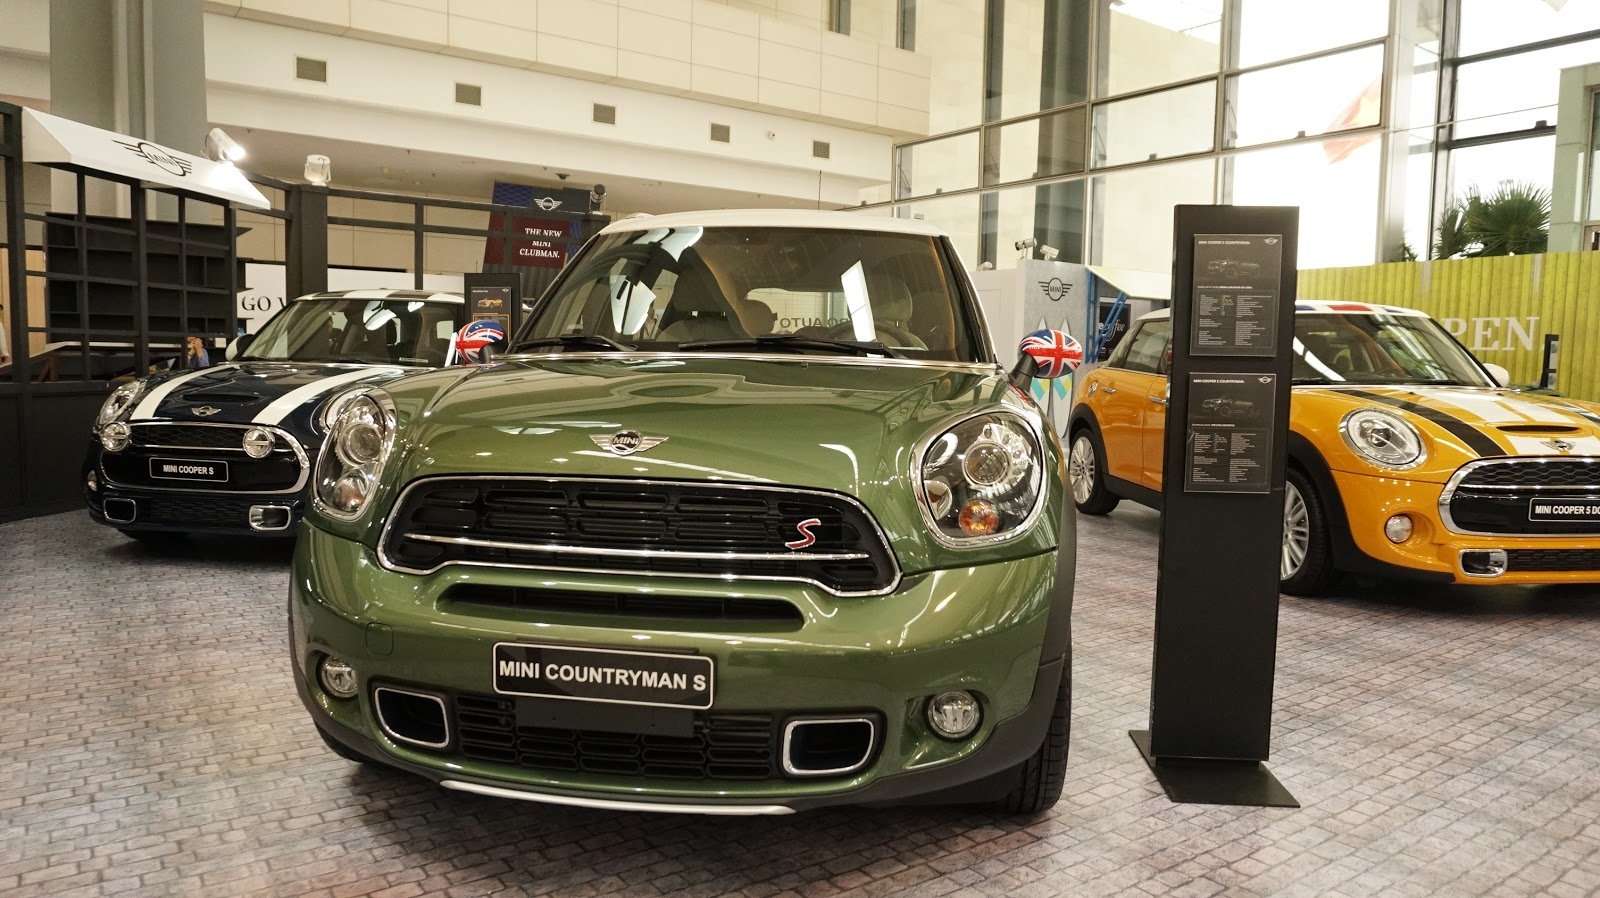 Mini Countryman S